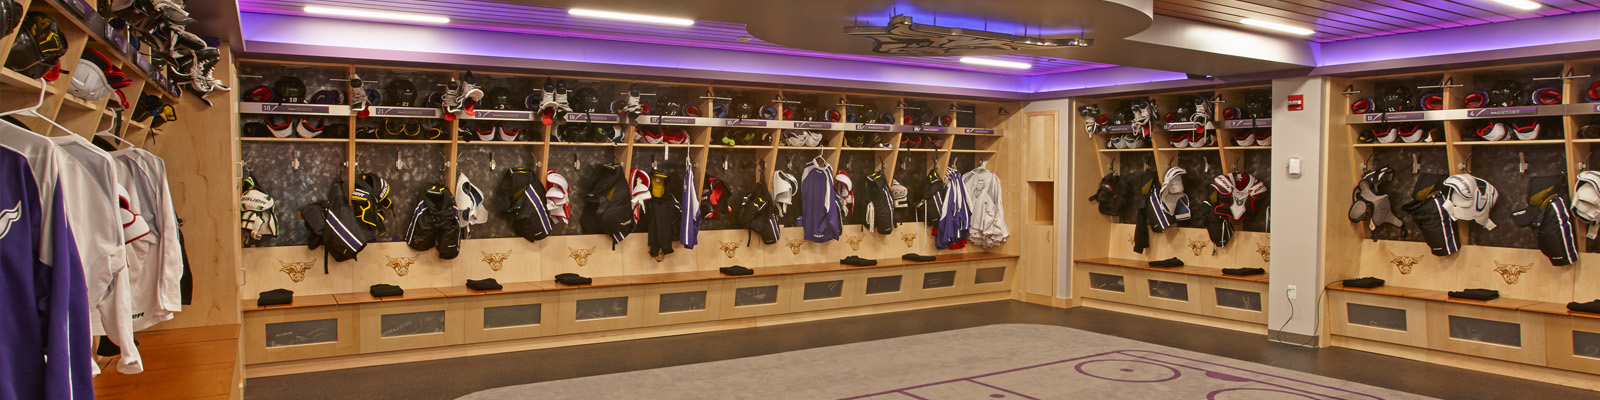 msum_mavericks_locker_room_02